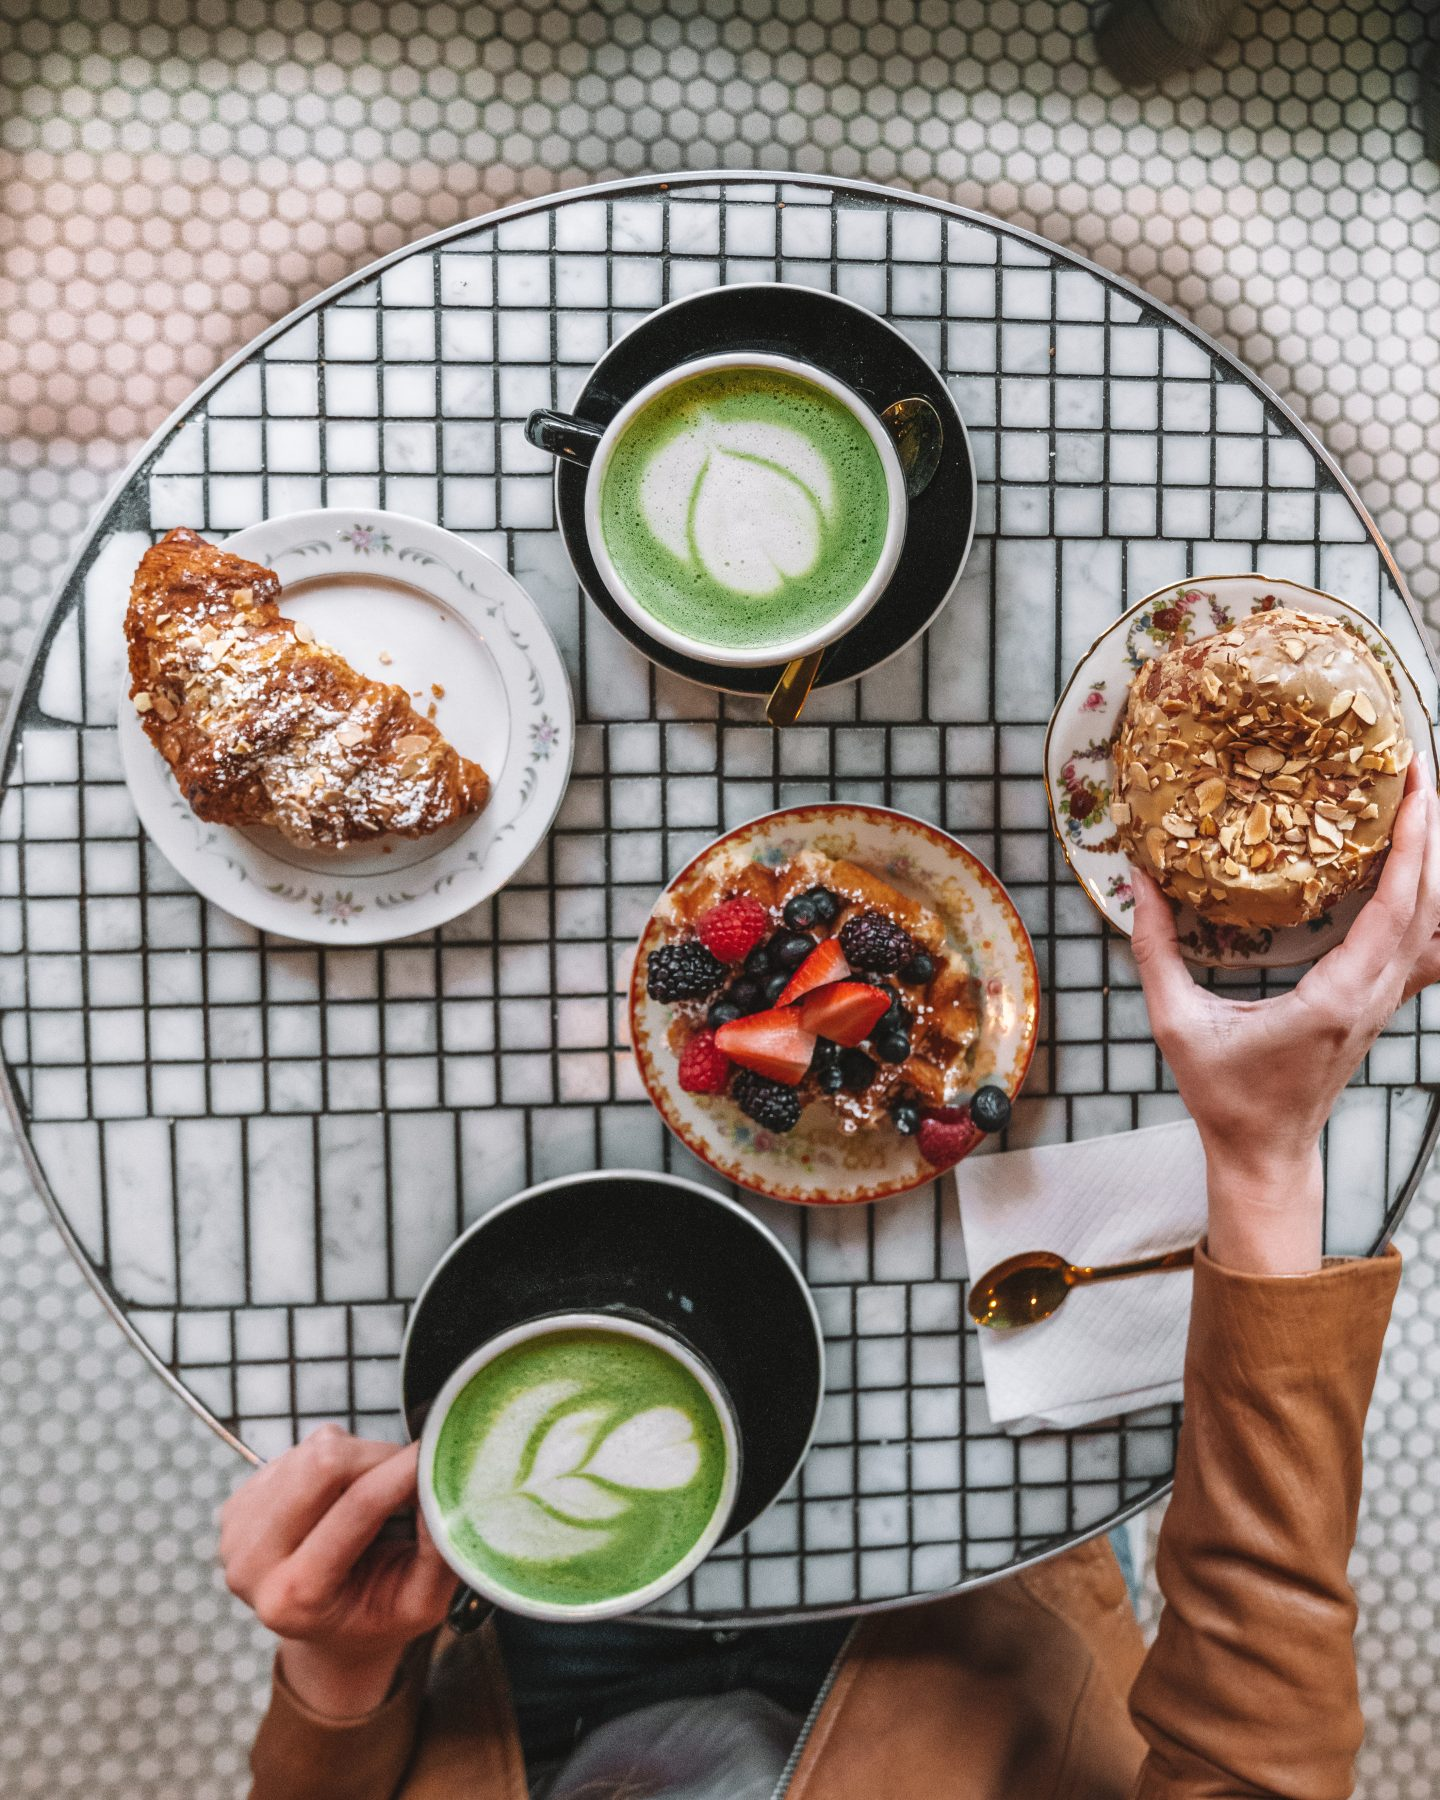 Brunch at Black Star Bakery with oat milk matcha lattes, donuts, and berry waffles